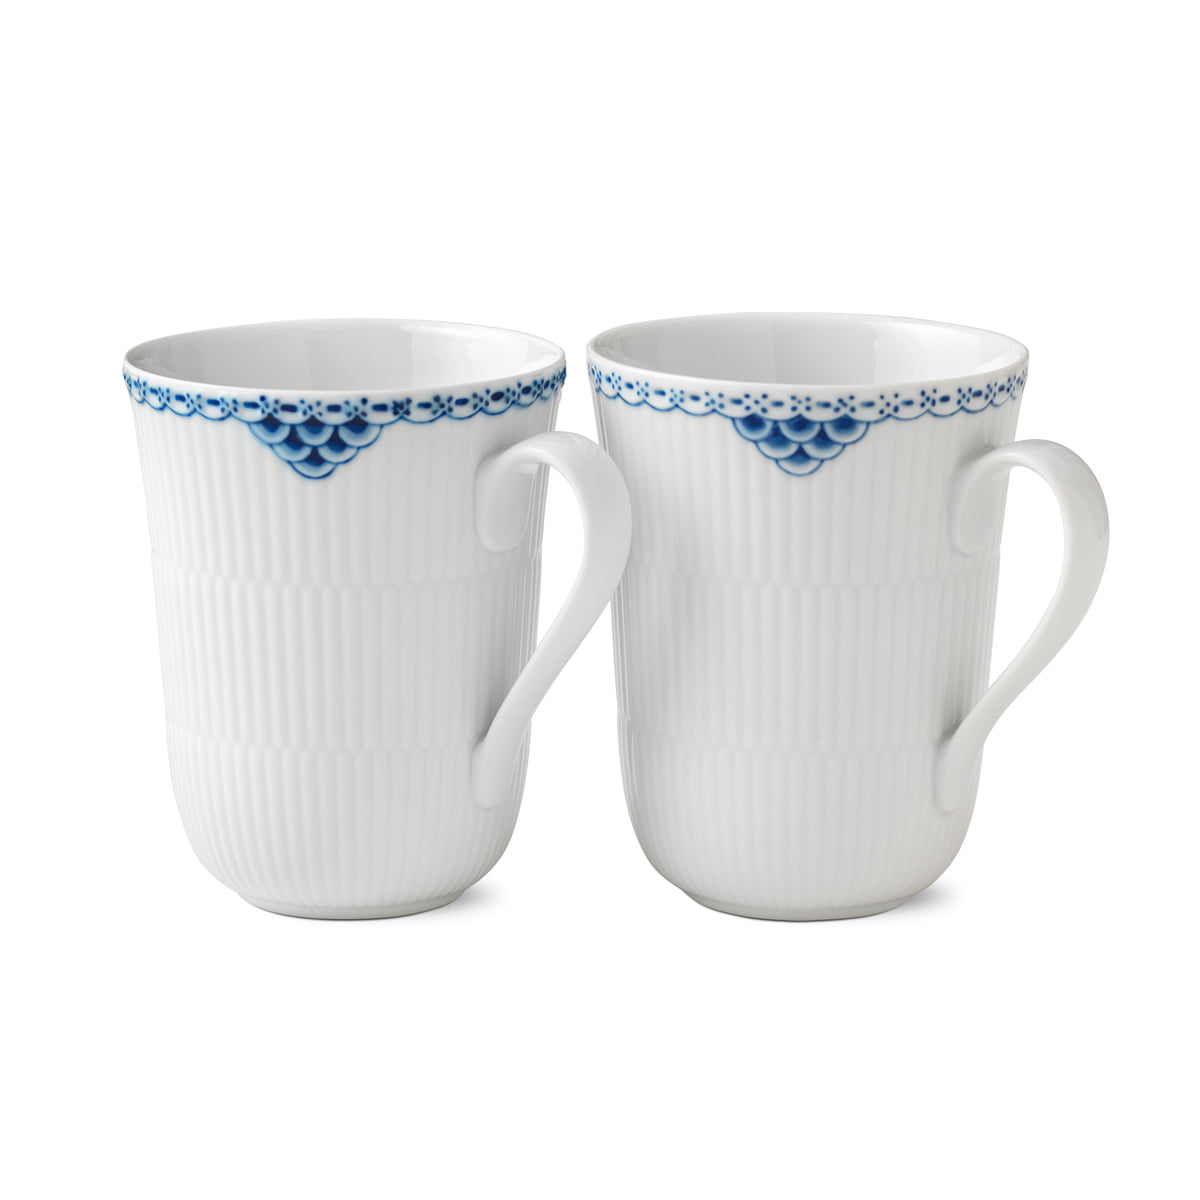 Royal Copenhagen Geschirr Royal Copenhagen Prinzess Becher 33 Cl 2er Set